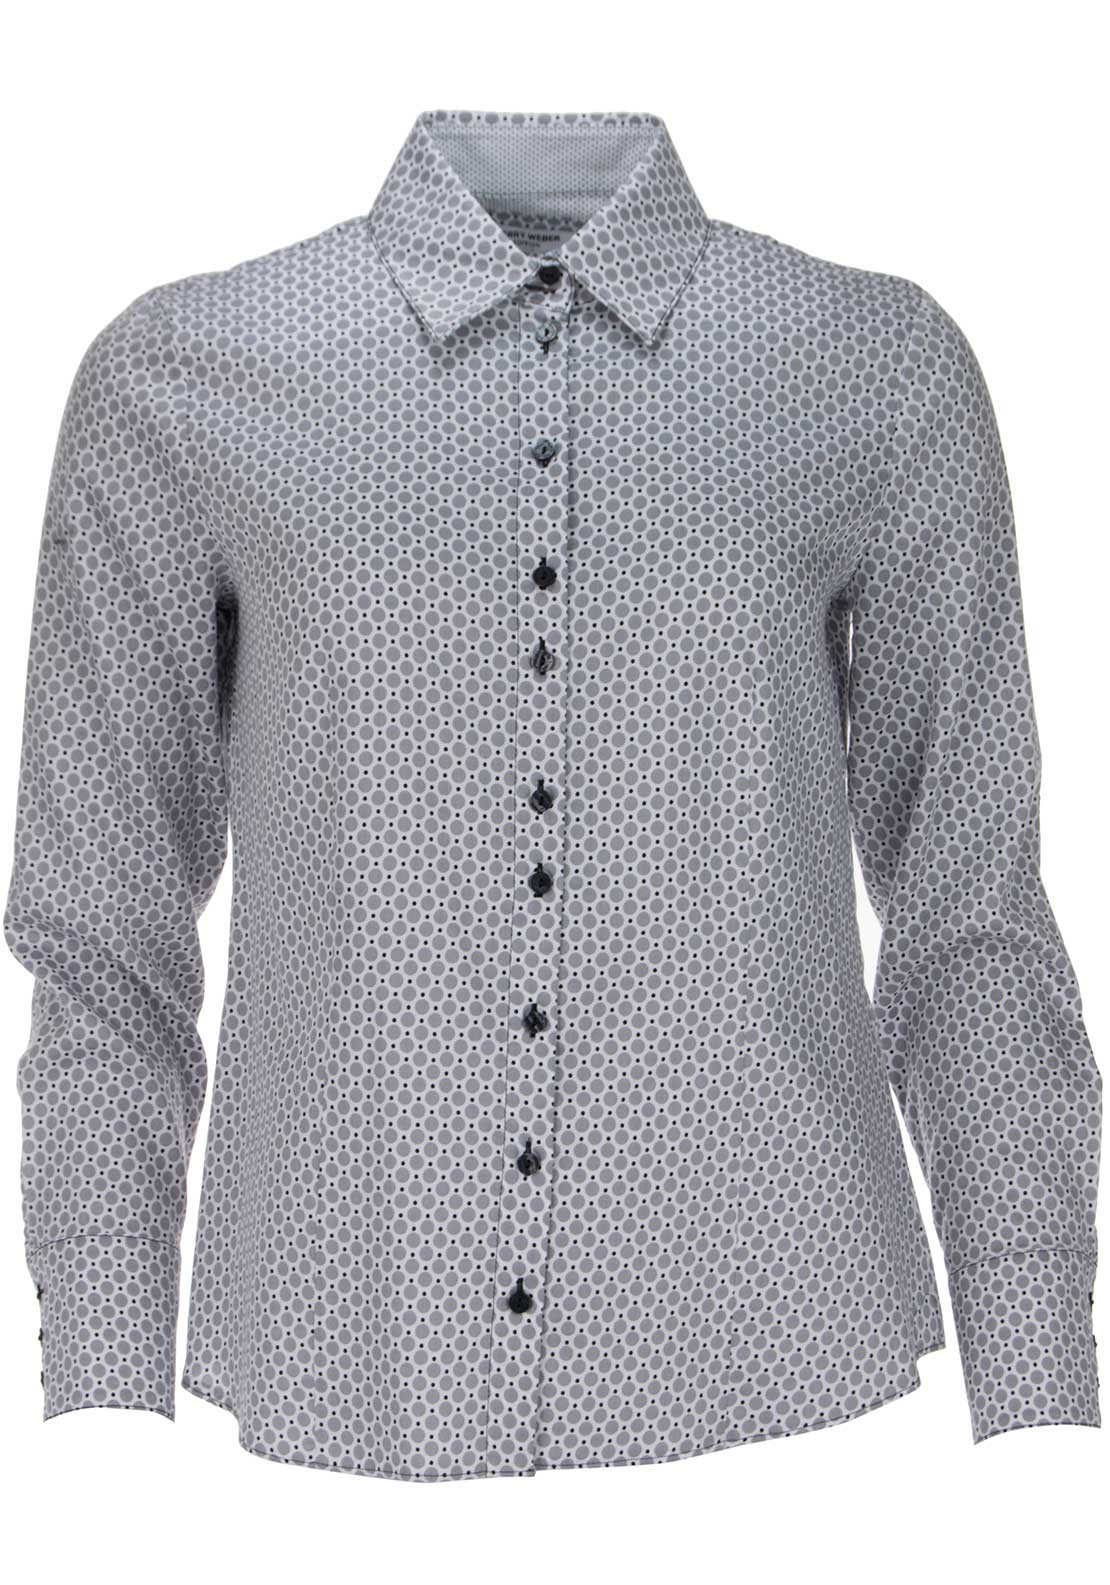 Gerry Weber Circle Print Long Sleeve Blouse, Grey Multi